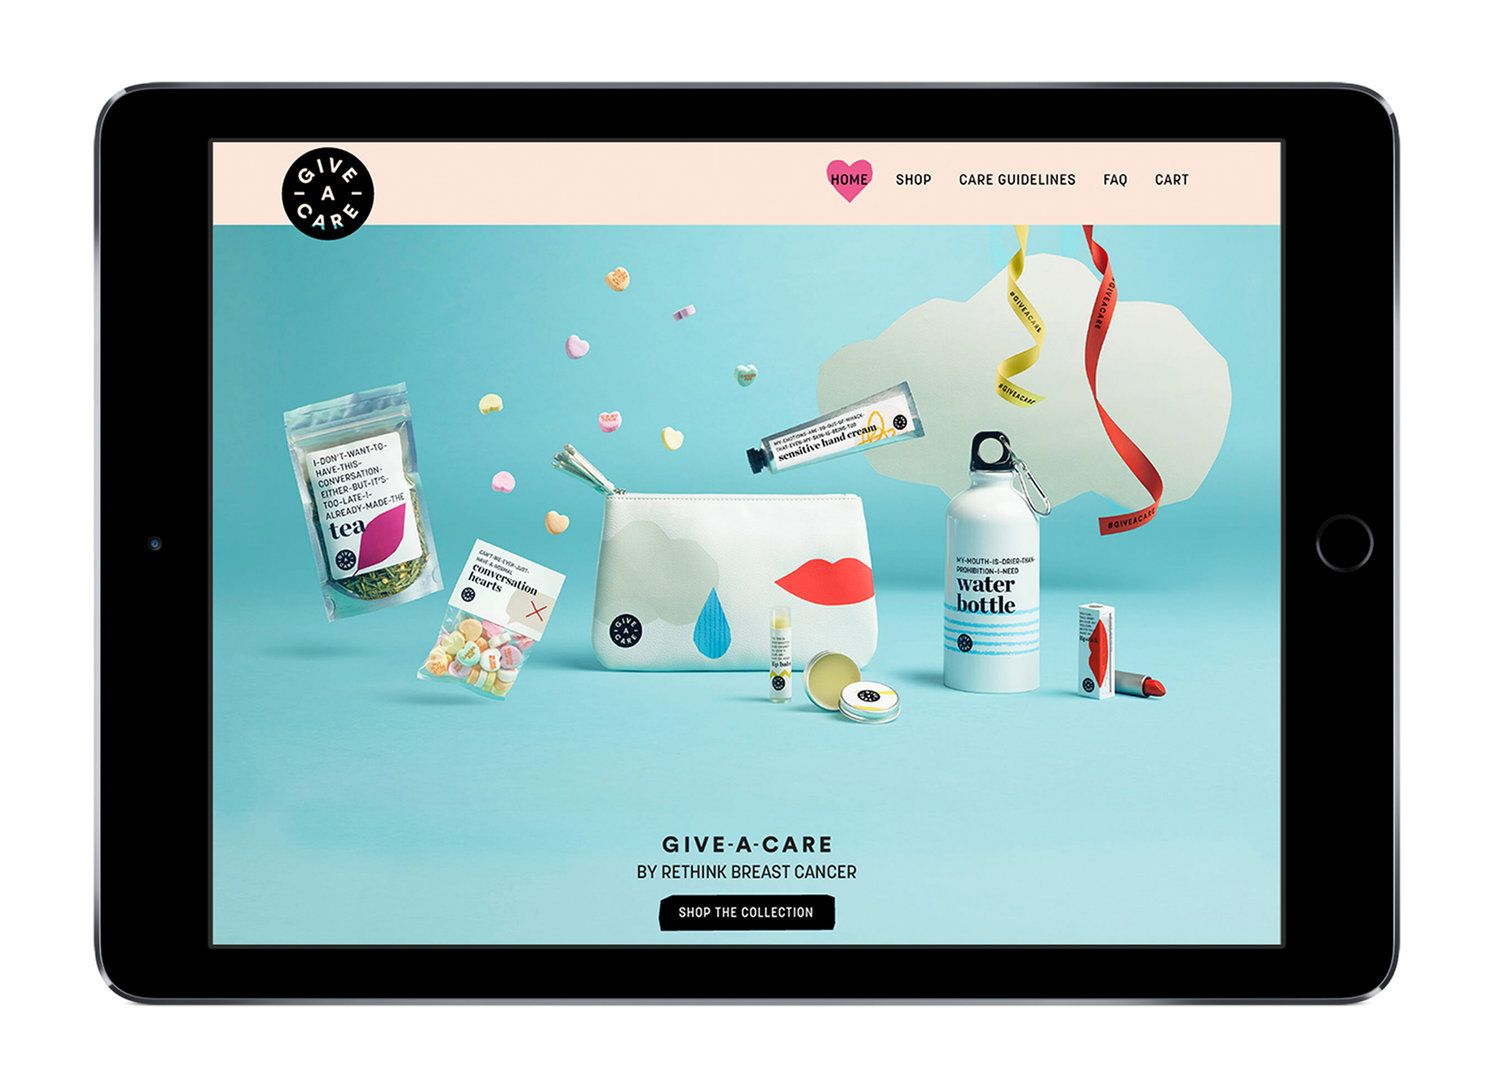 Rethink Breast Cancer Give-A-Care Collection — The Dieline | Packaging & Branding Design & Innovation News